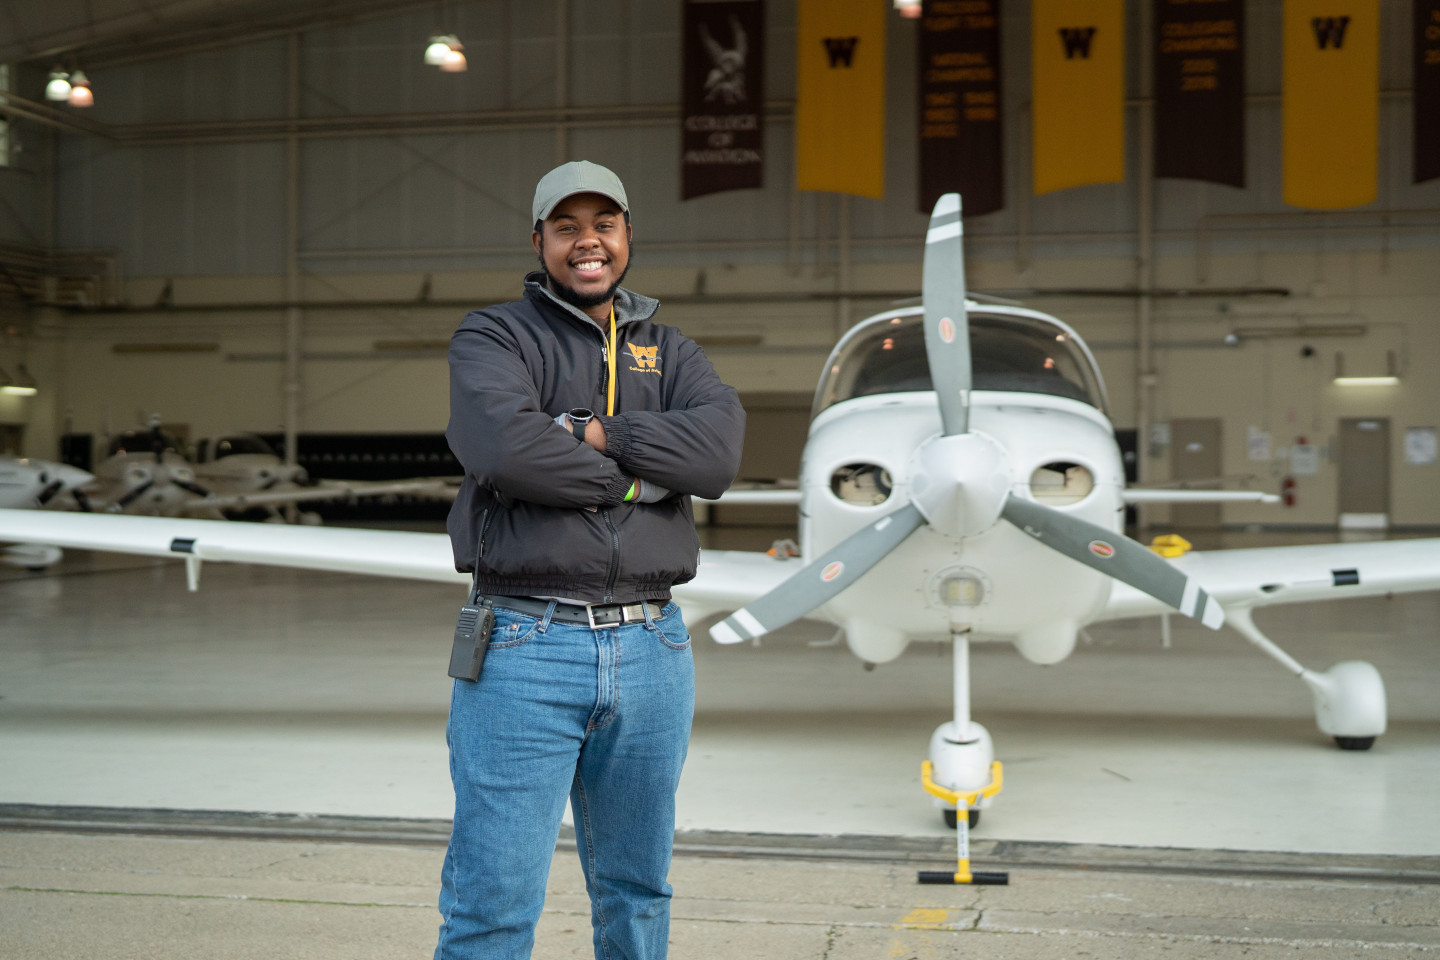 Dezmond Stover stands in front of a plane.